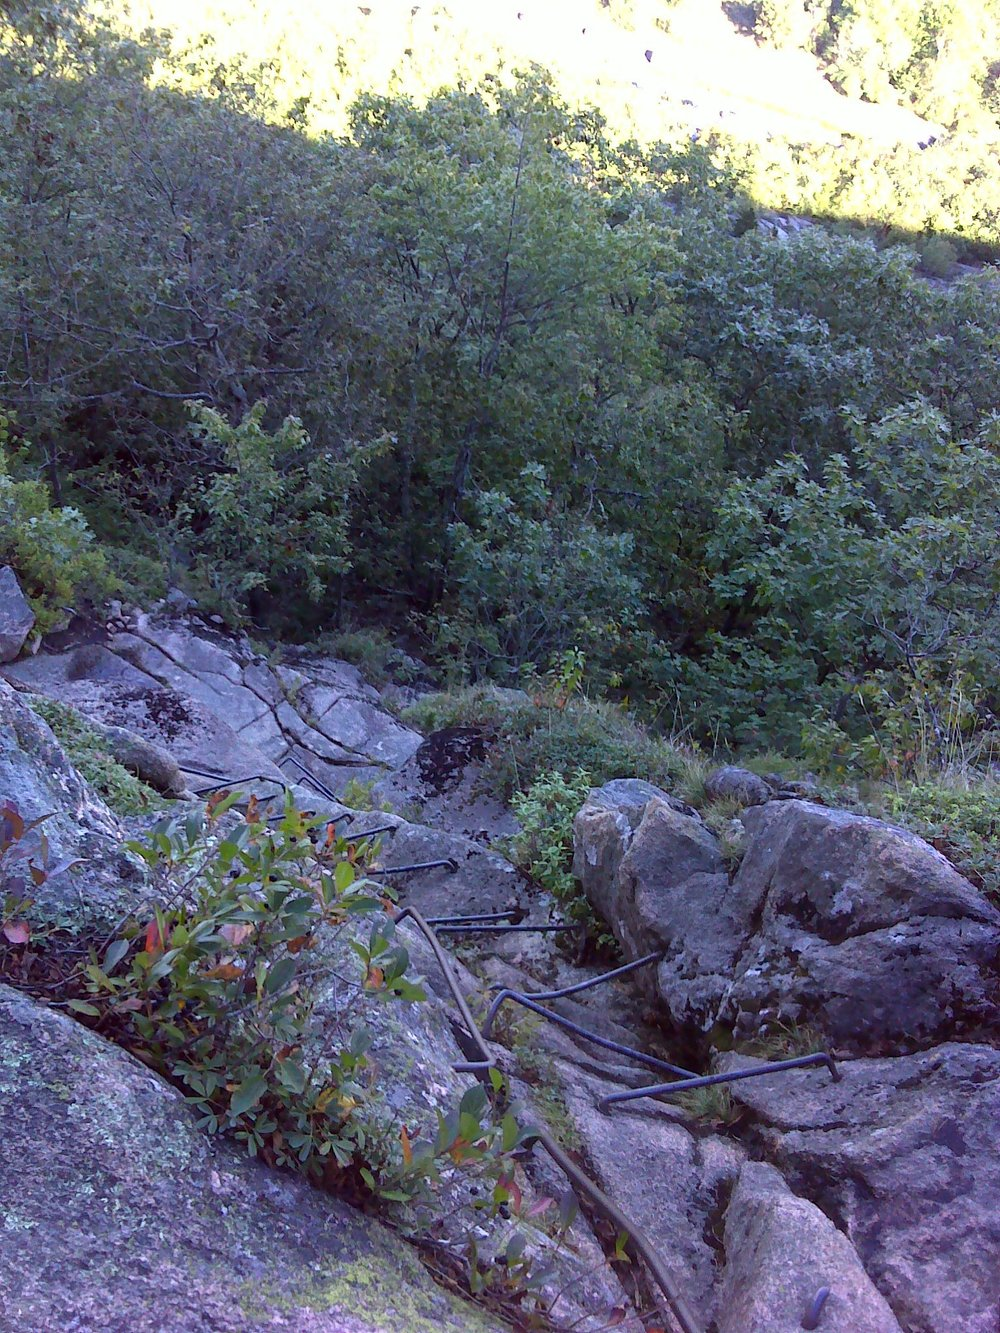 The Precipice Trail